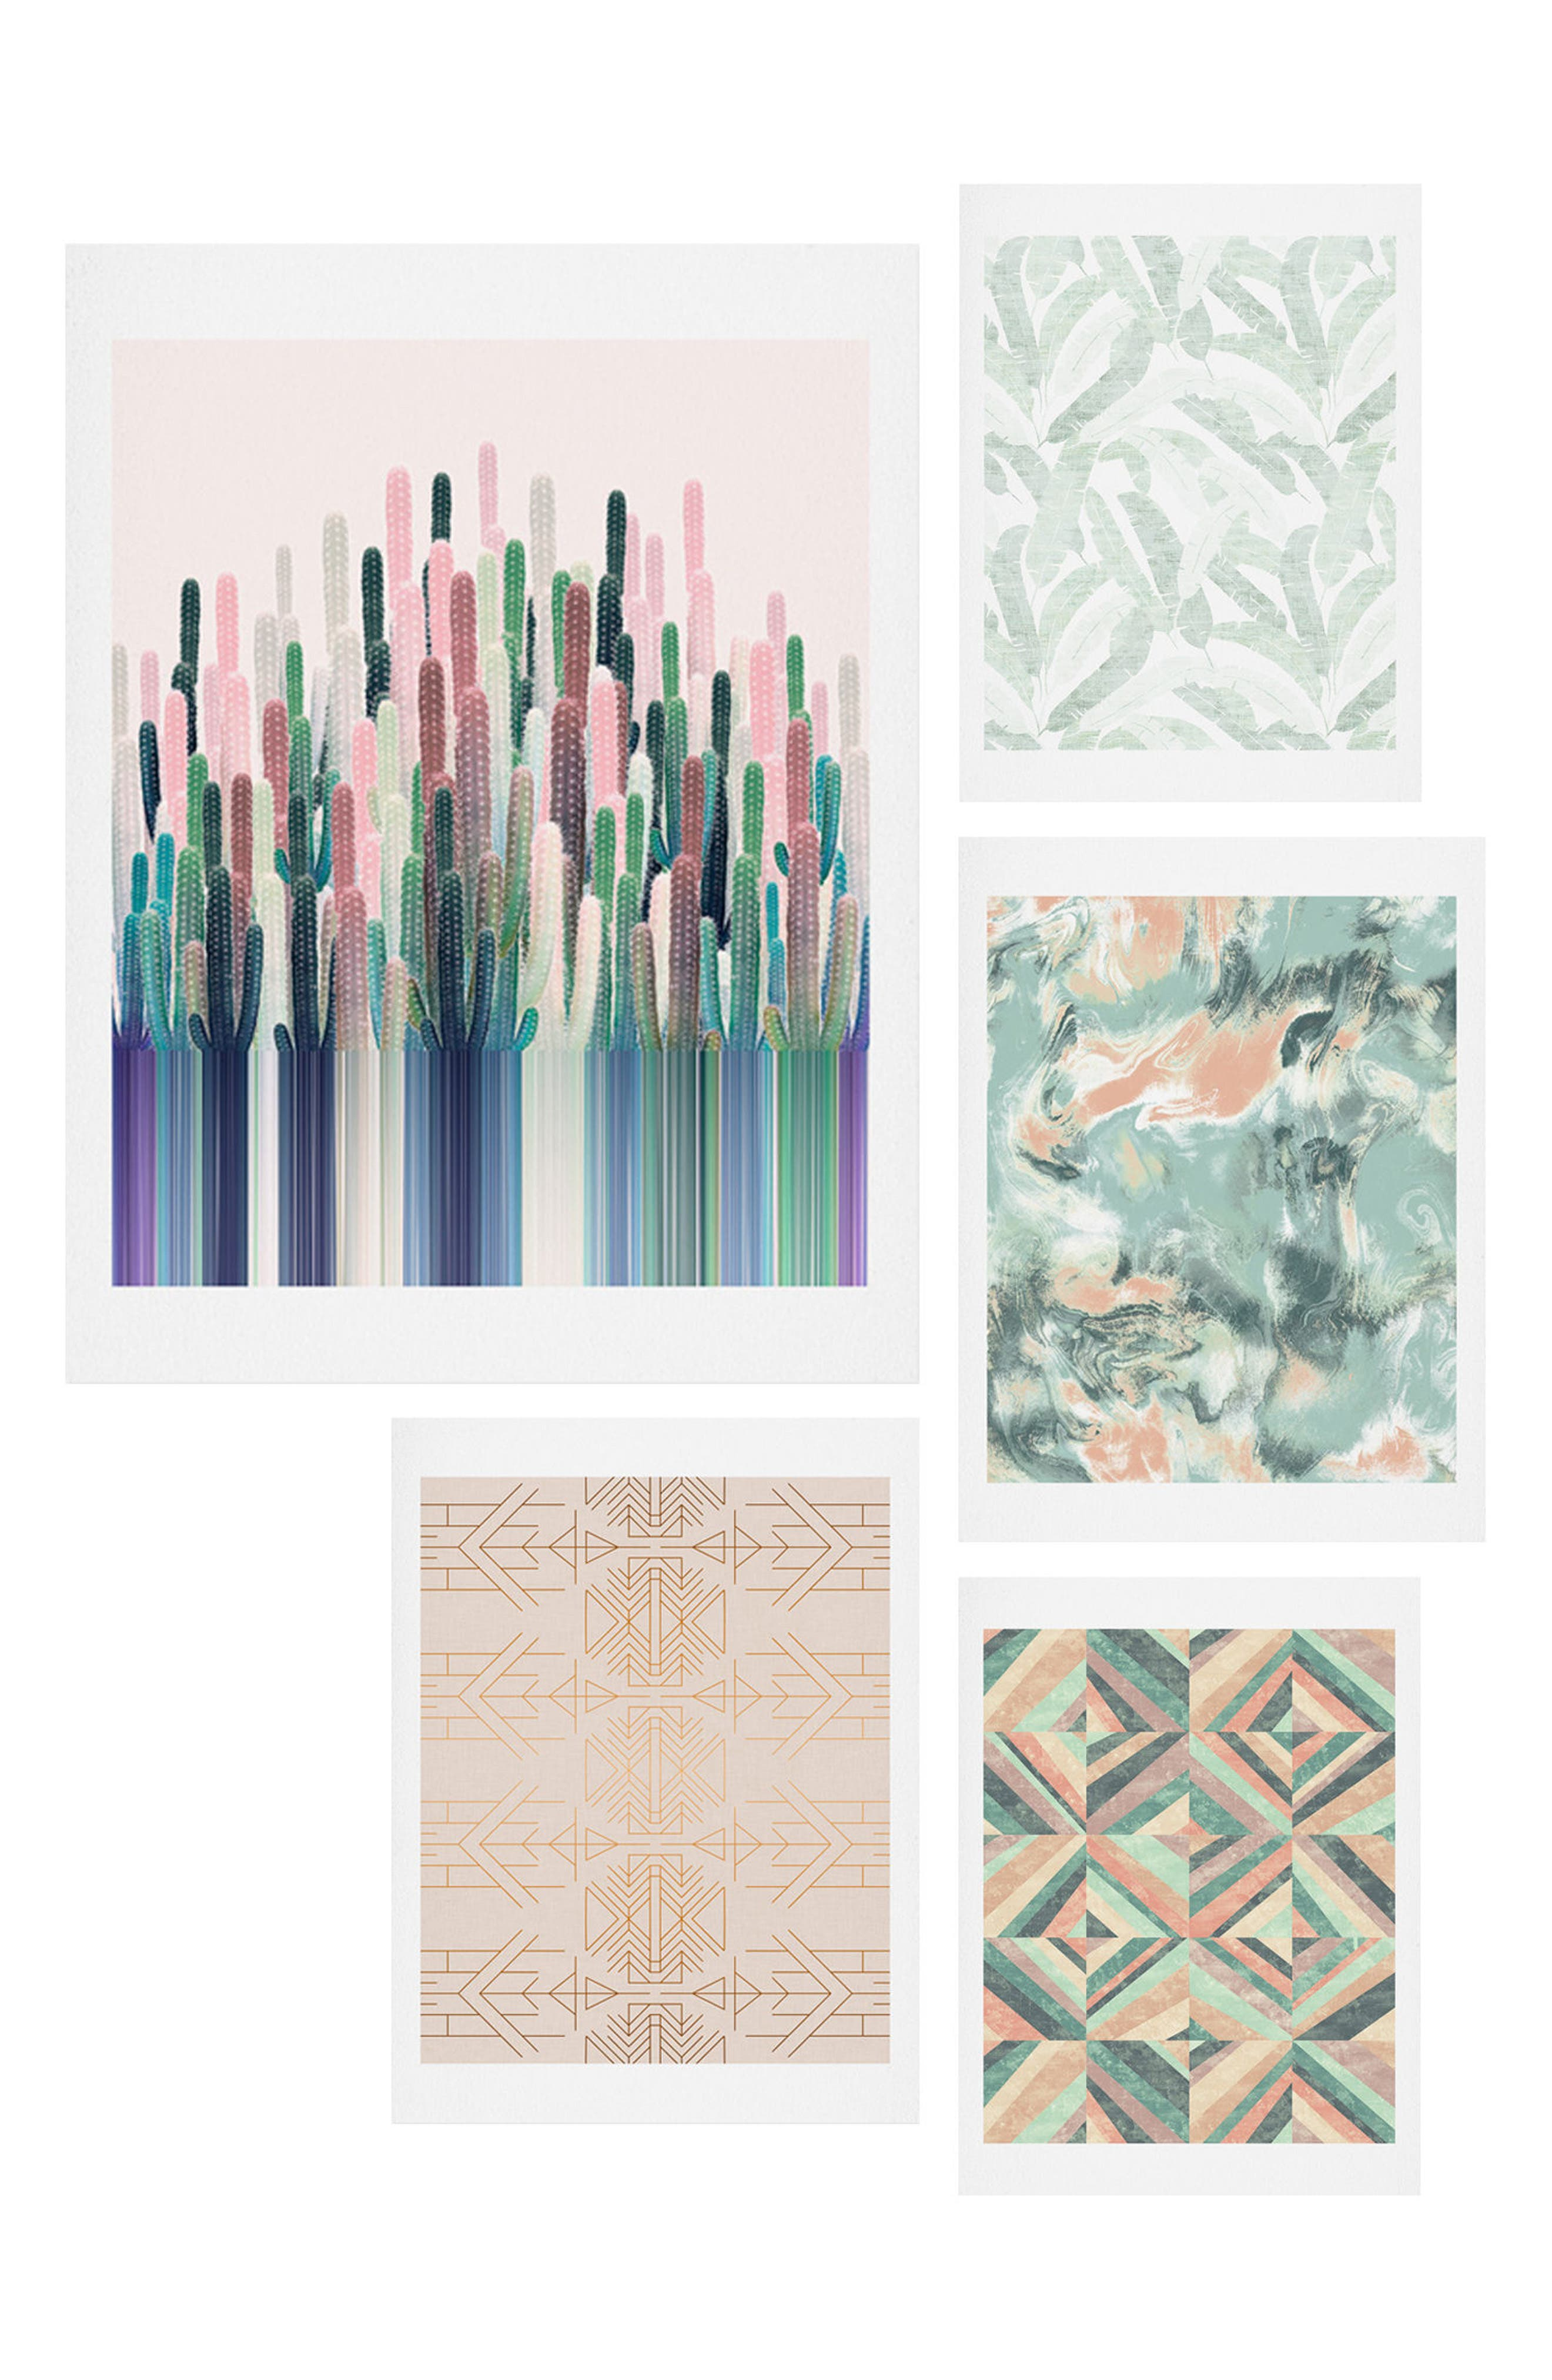 DENY DESIGNS Matcha Blush Five-Piece Gallery Wall Art Print Set, Main, color, CORAL AND GREEN